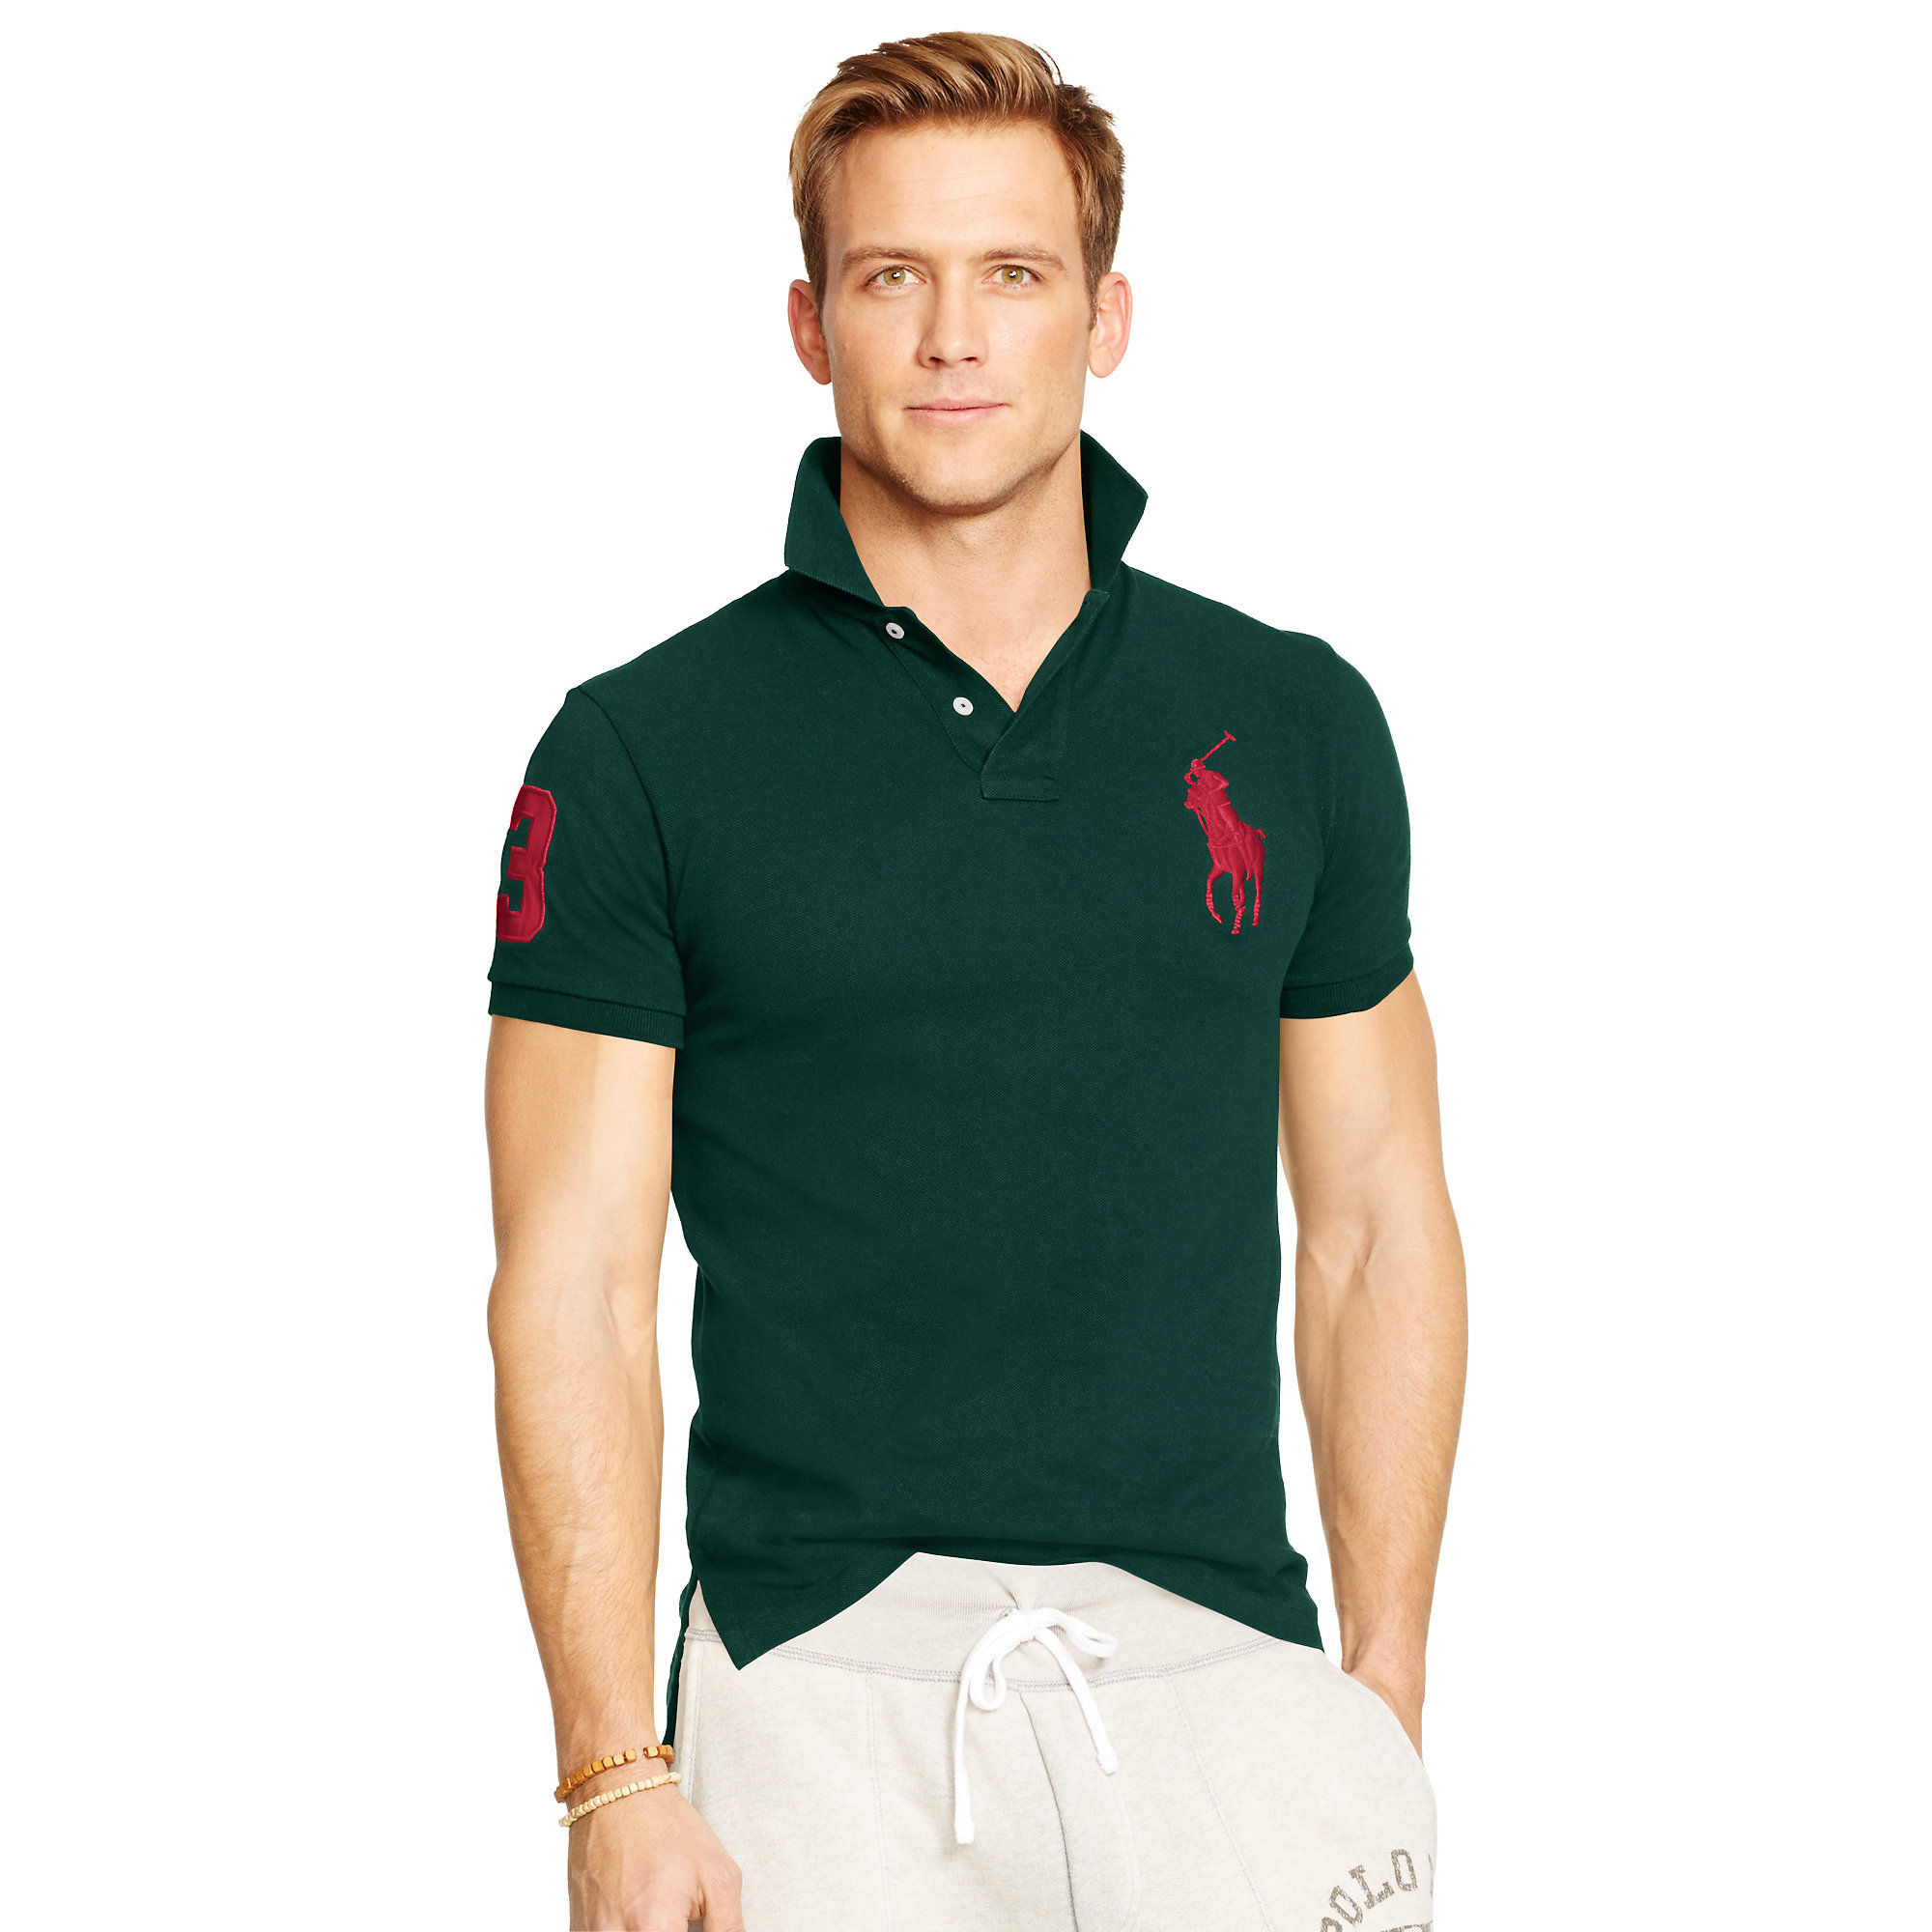 lyst polo ralph lauren custom fit big pony polo in green for men. Black Bedroom Furniture Sets. Home Design Ideas